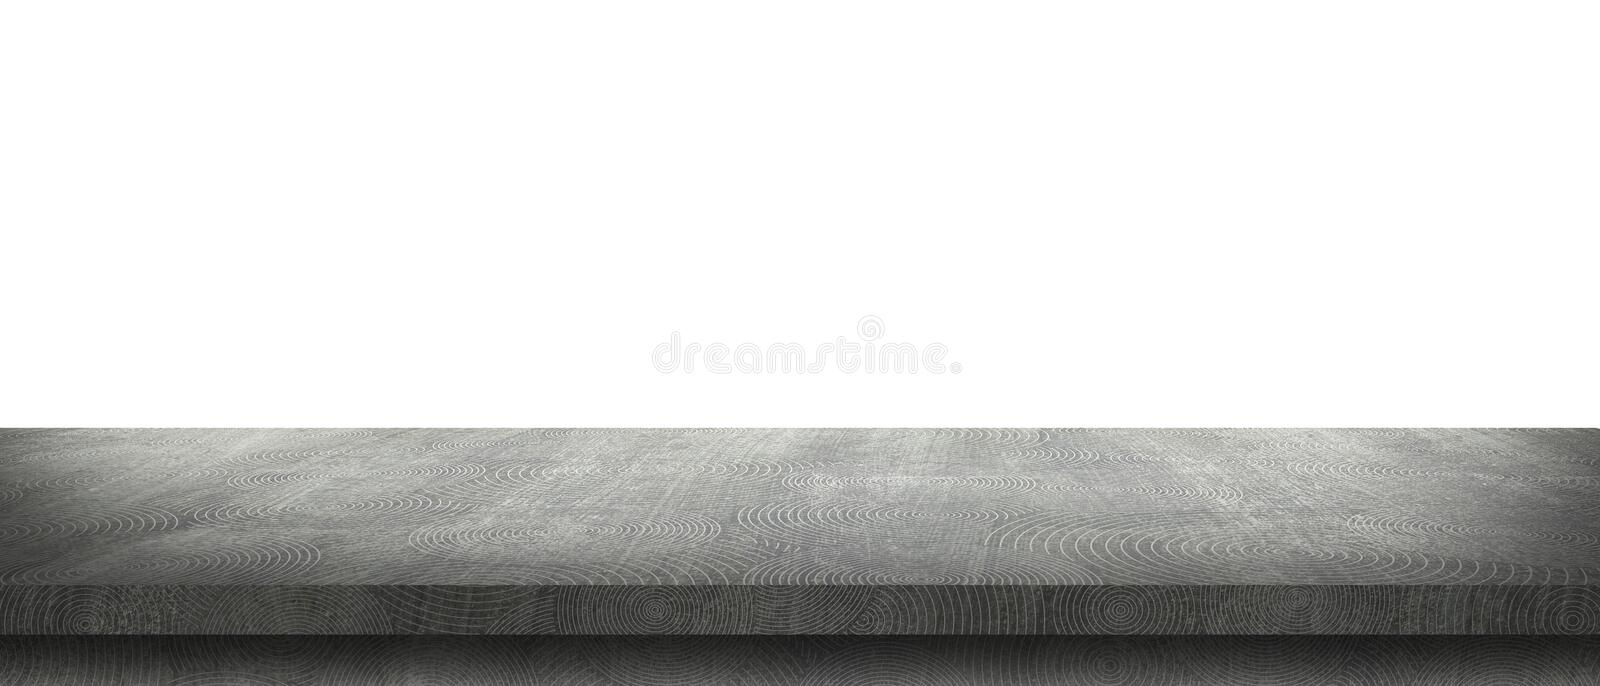 Perspective concrete cement floor with circle line texture background.  royalty free stock image